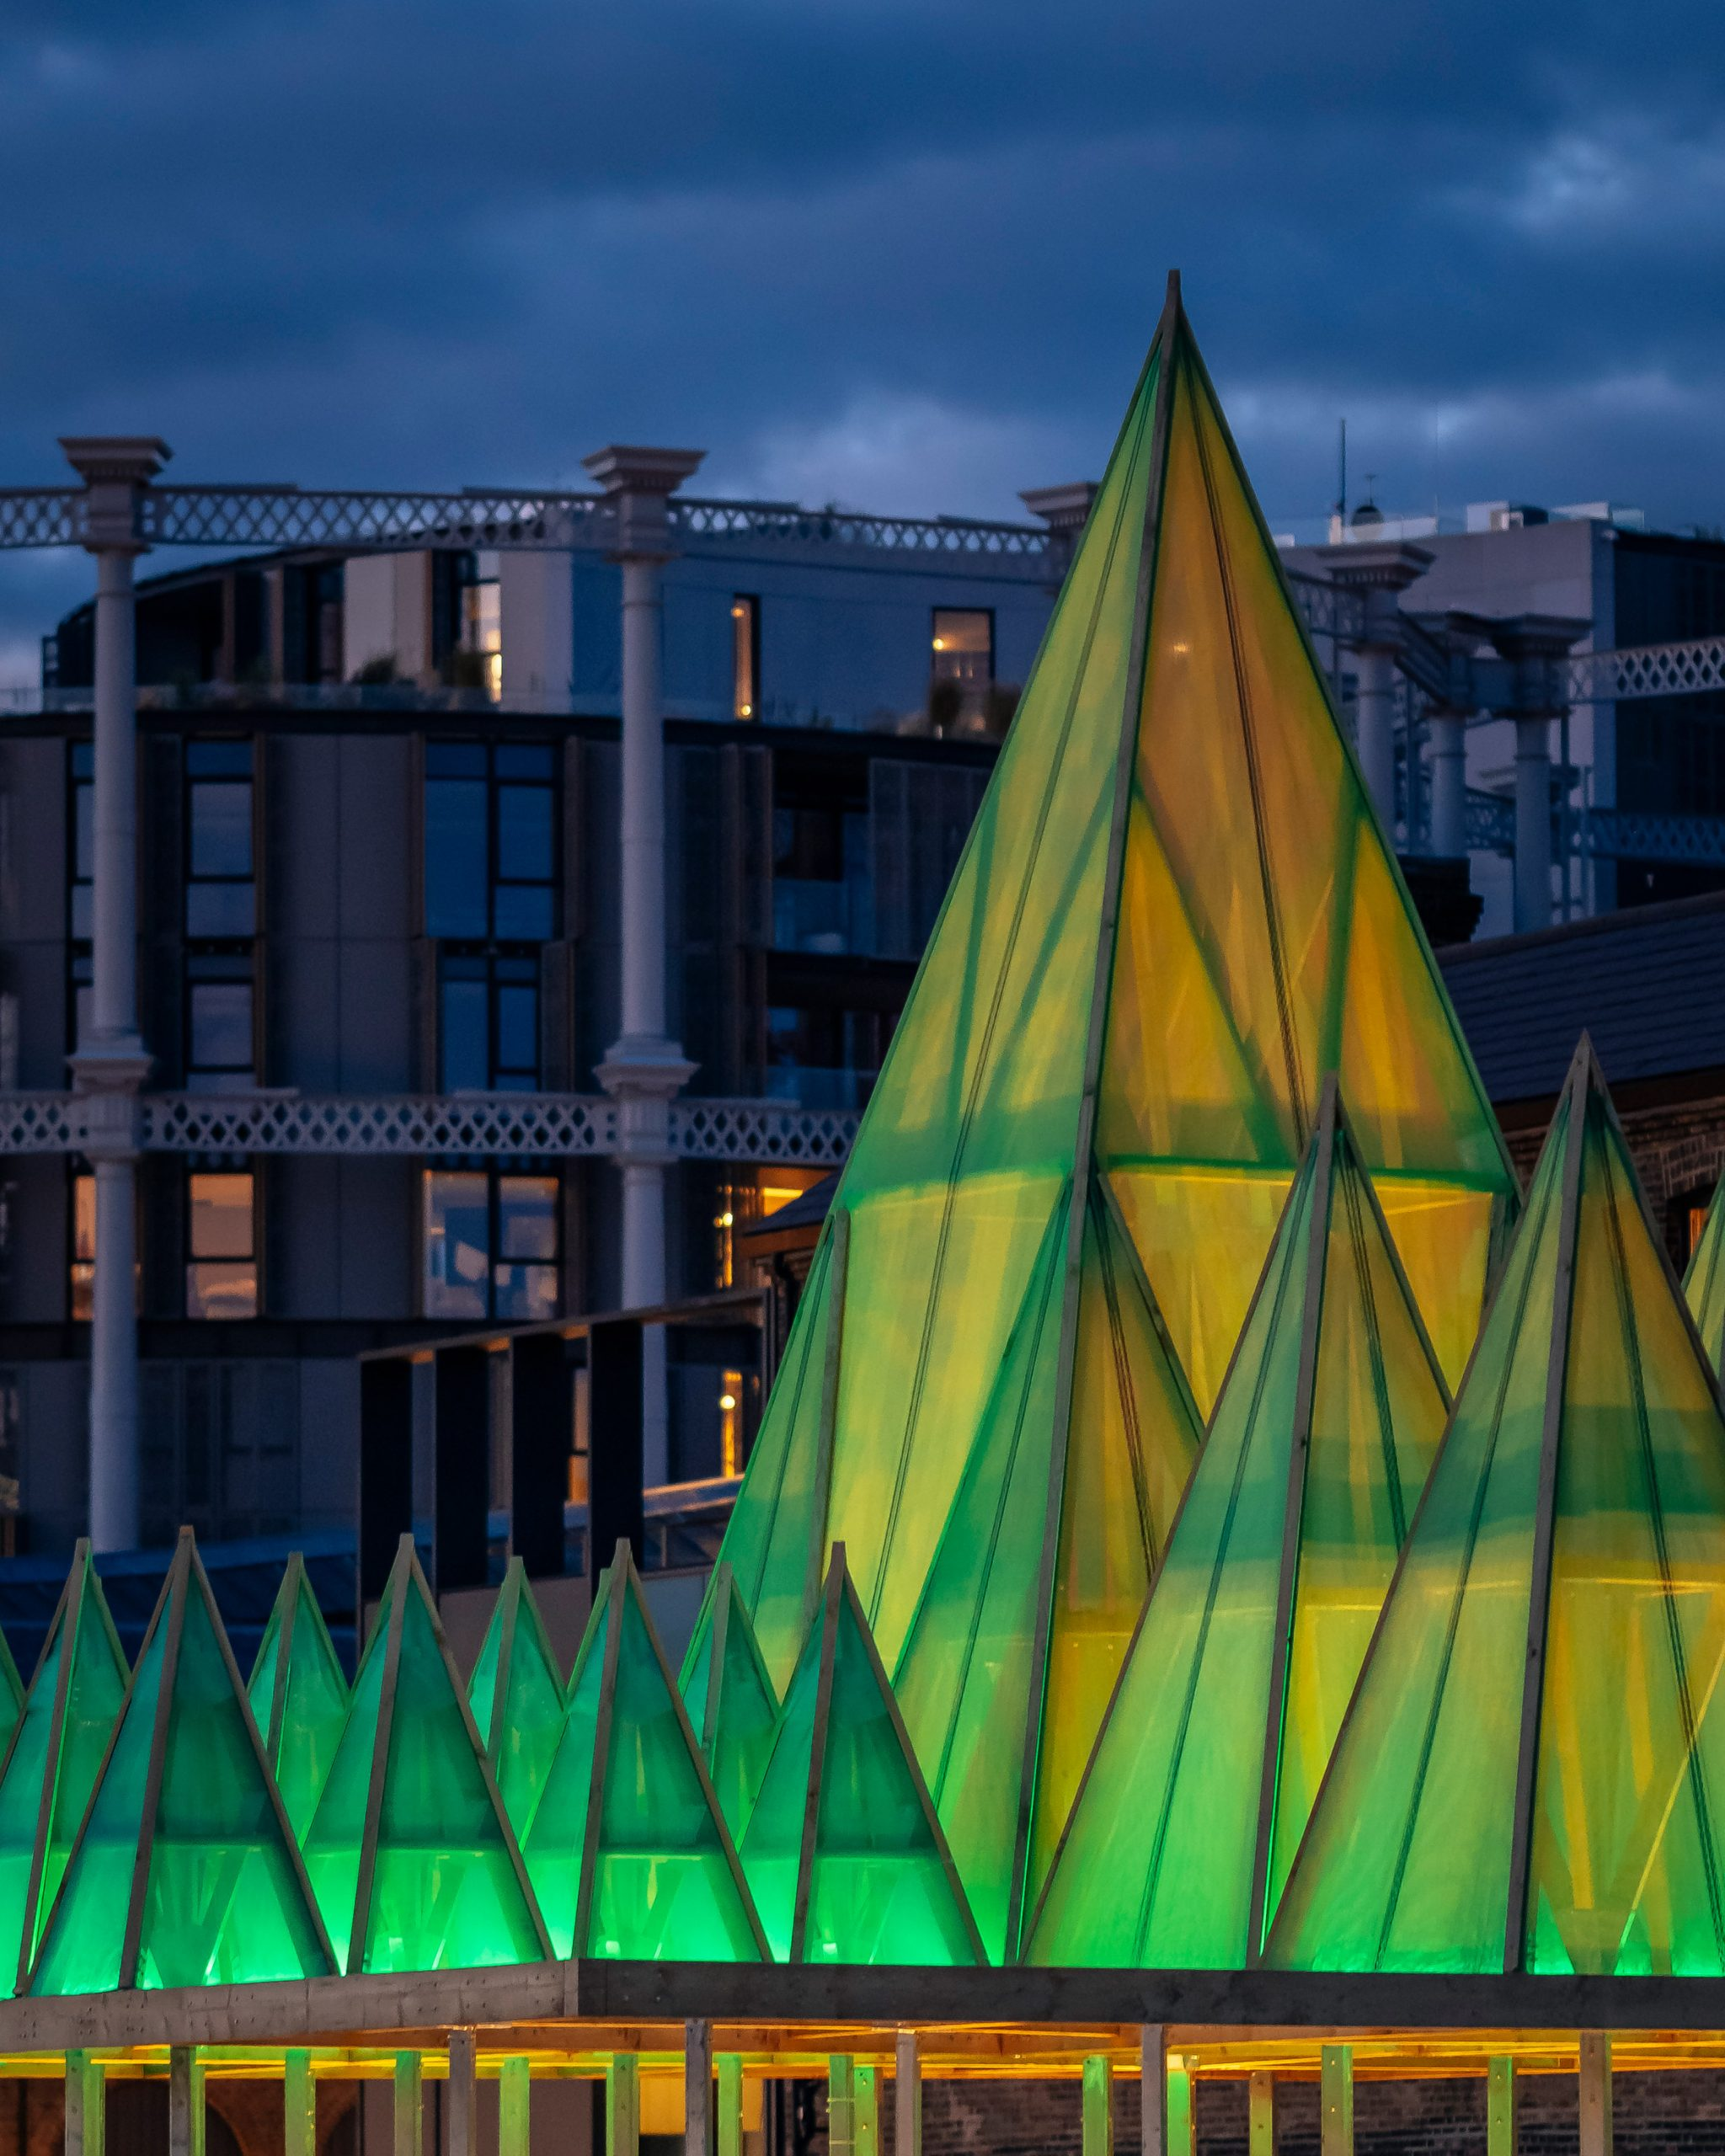 Close up of the Electric Nemeton Christmas installation by Sam Jacob Studio in King's Cross, London, at night